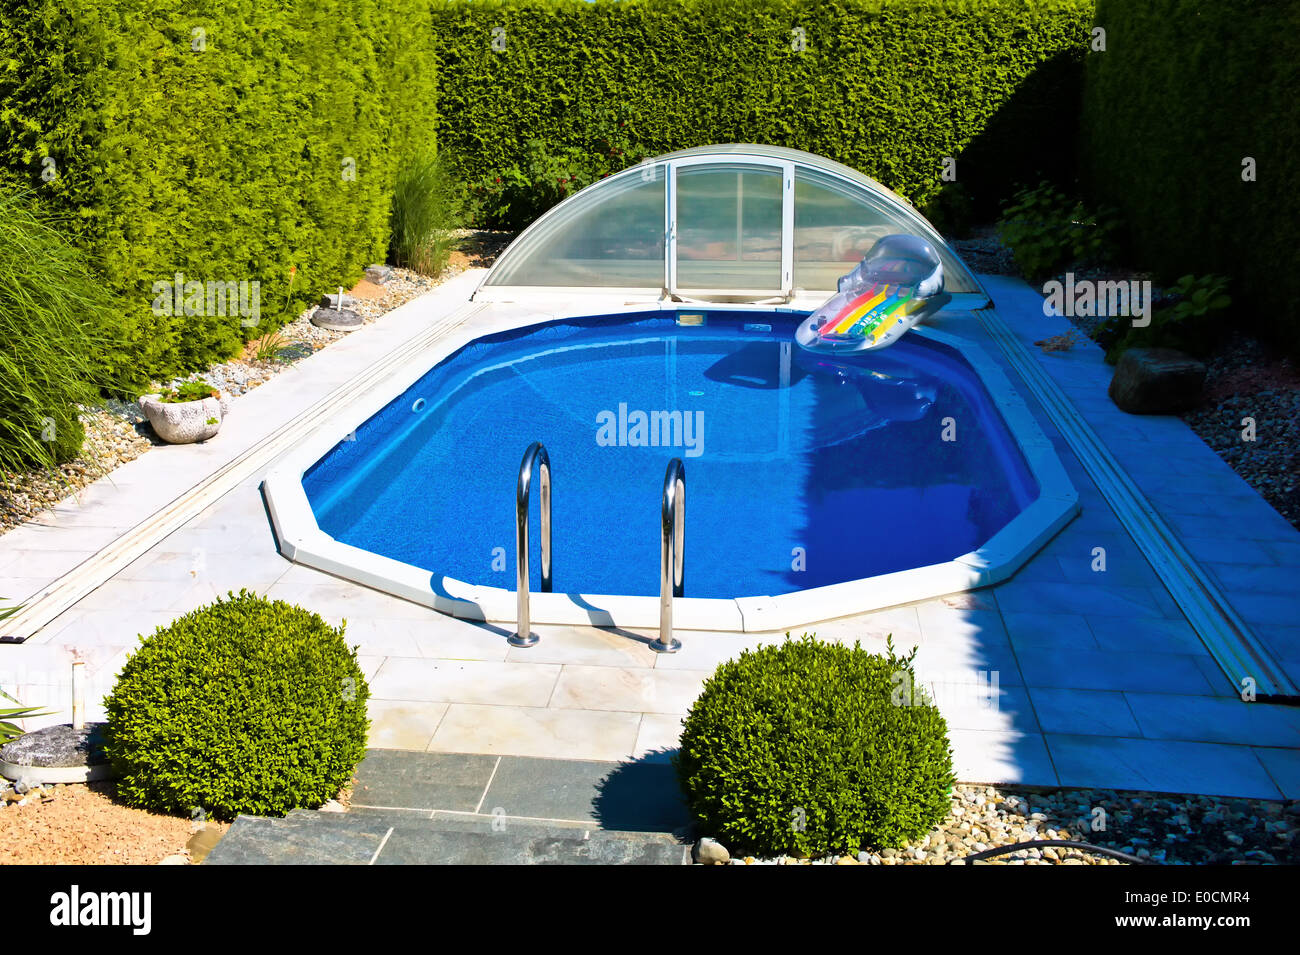 The swimming-pool of a single-family dwelling invites to Baden, Das Schwimmbad eines Einfamilienhauses laedt zum Baden ein - Stock Image